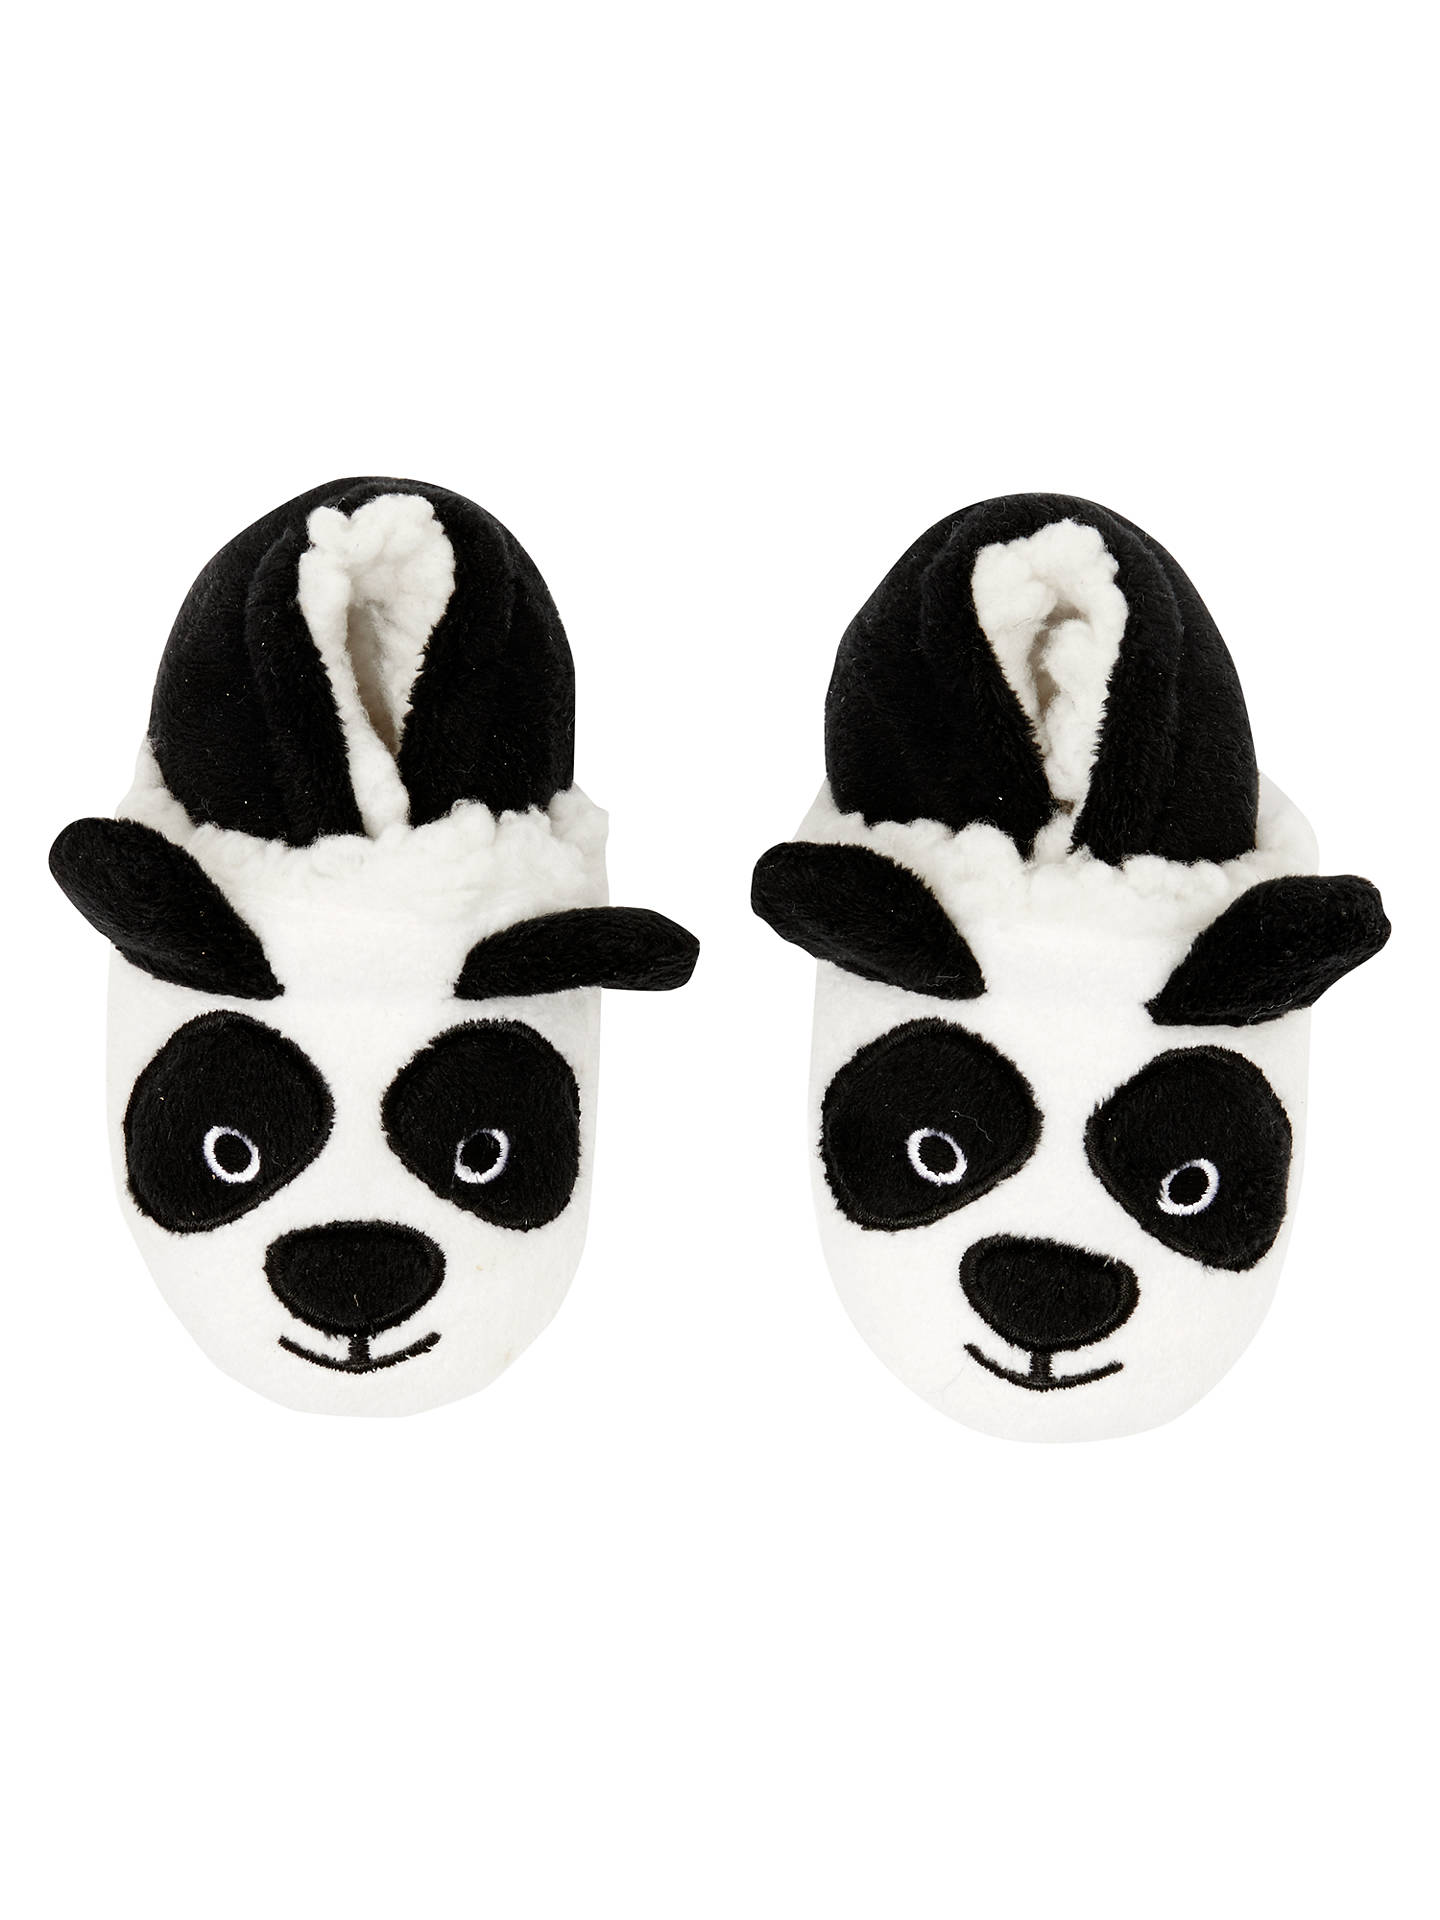 BuyJohn Lewis Baby Panda Slippers, Black/White, 0-3 mths Online at johnlewis.com